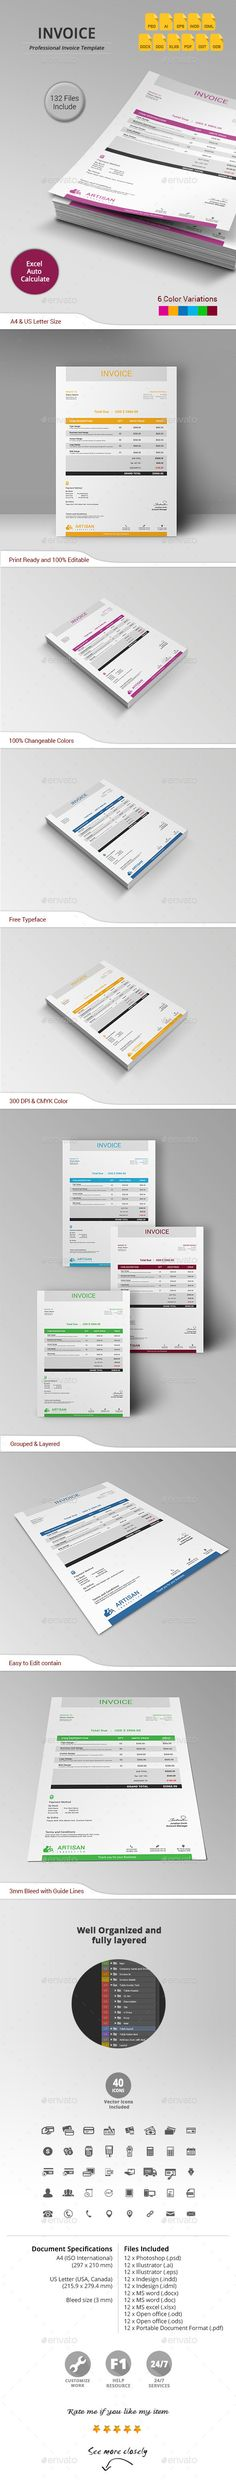 #Invoice - #Proposals & Invoices #Stationery Download here: https://graphicriver.net/item/invoice/11206215?ref=alena994